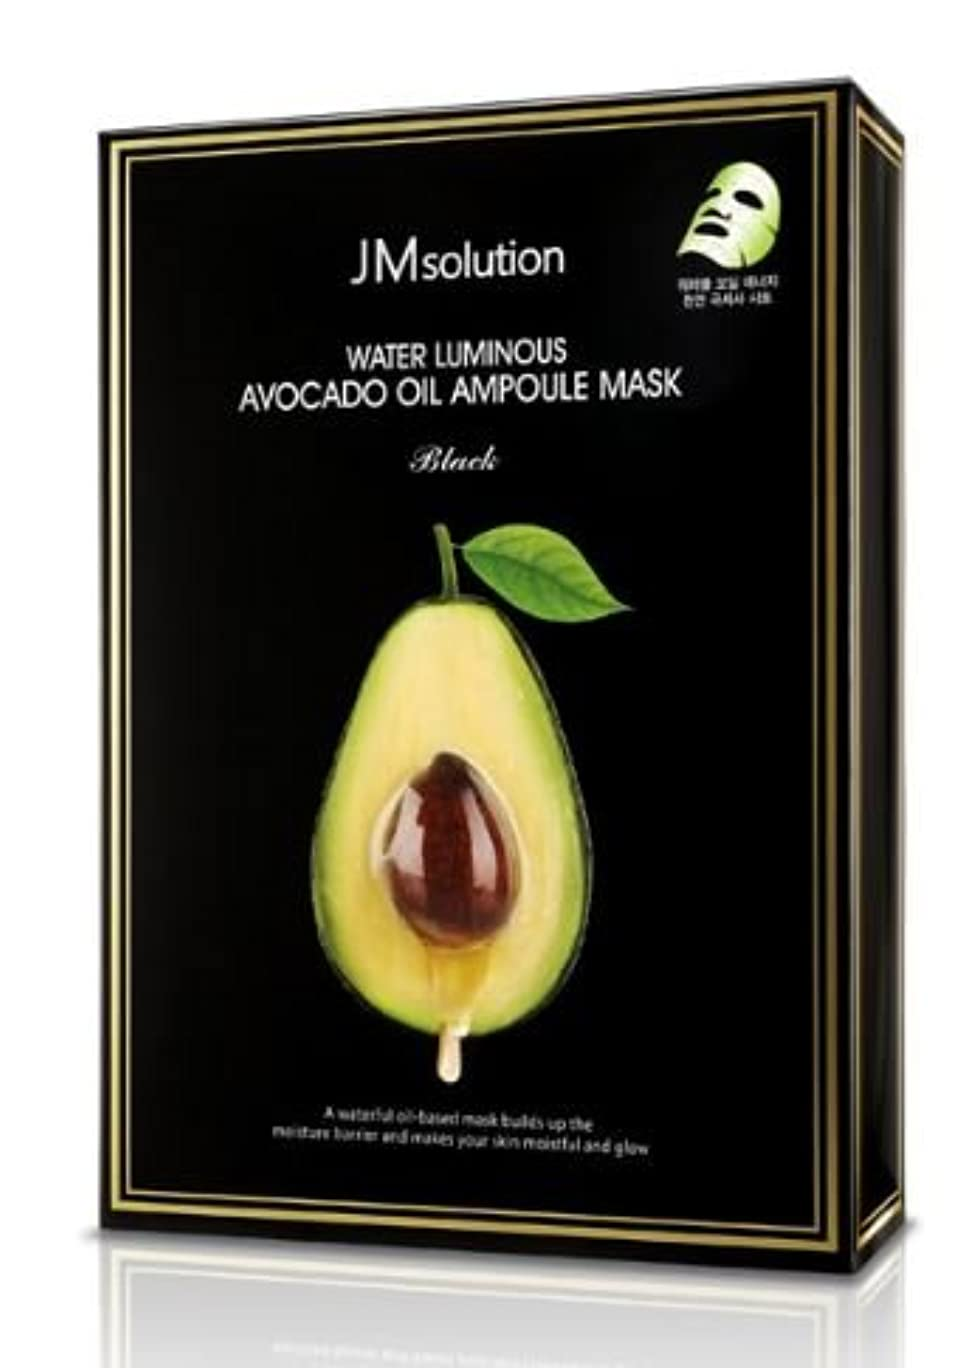 引き付ける情熱的望む[JM solution] Water Luminous Avocado Oil Ampoule Mask_Black 35ml*10ea [並行輸入品]